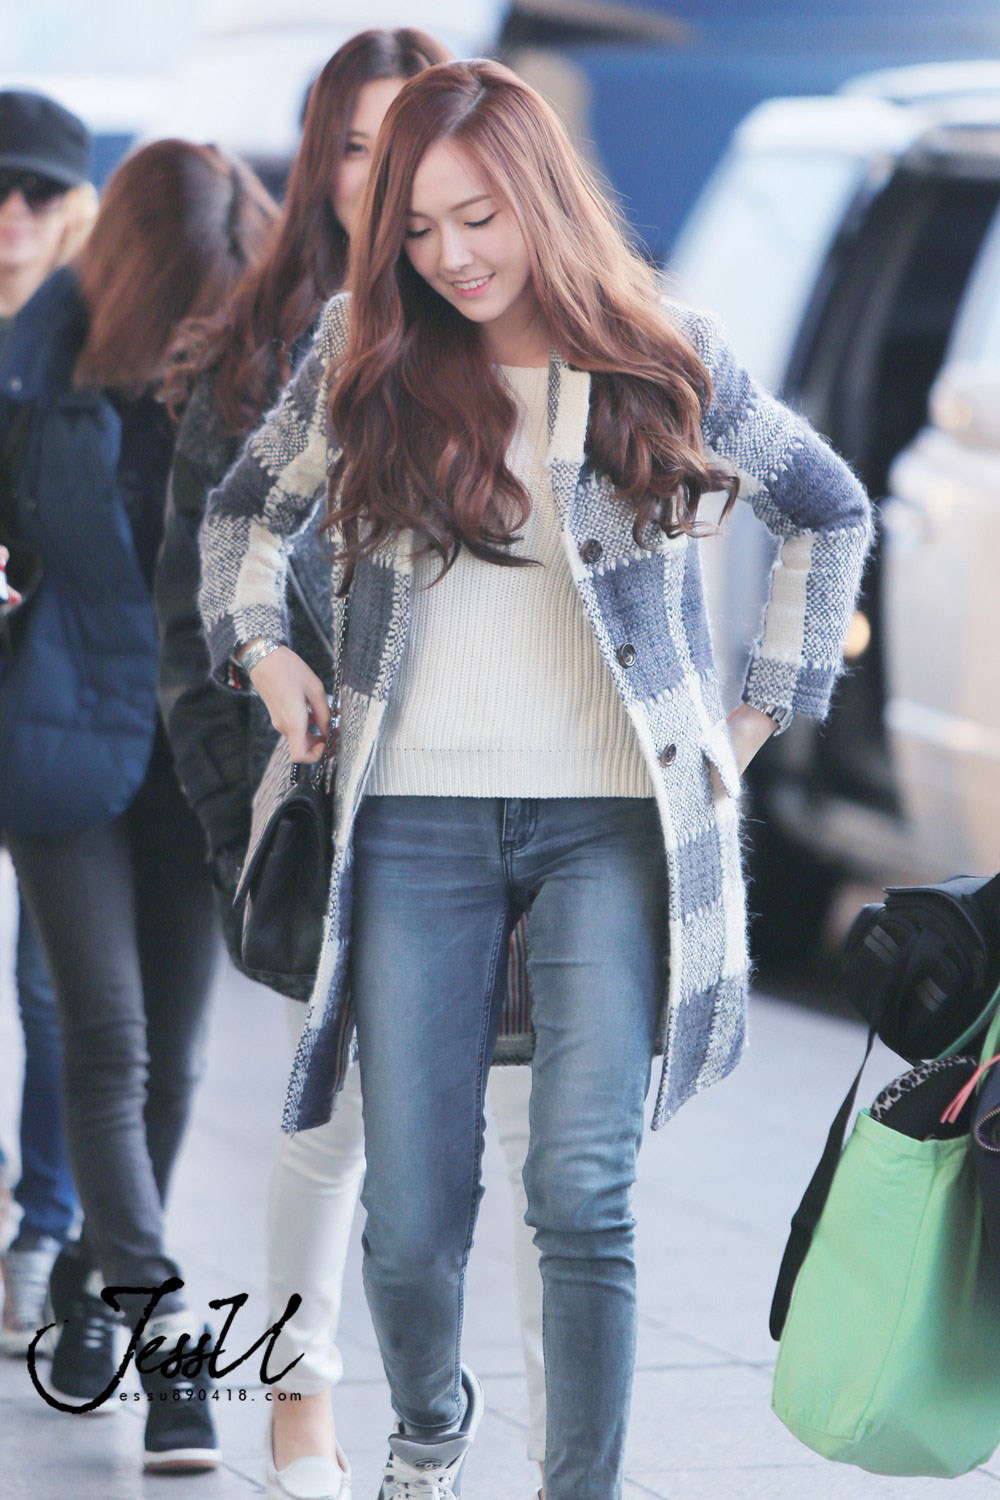 Girls Shoes Wallpaper Jessica Snsd Images Jessica S Airport Fashion Hd Wallpaper